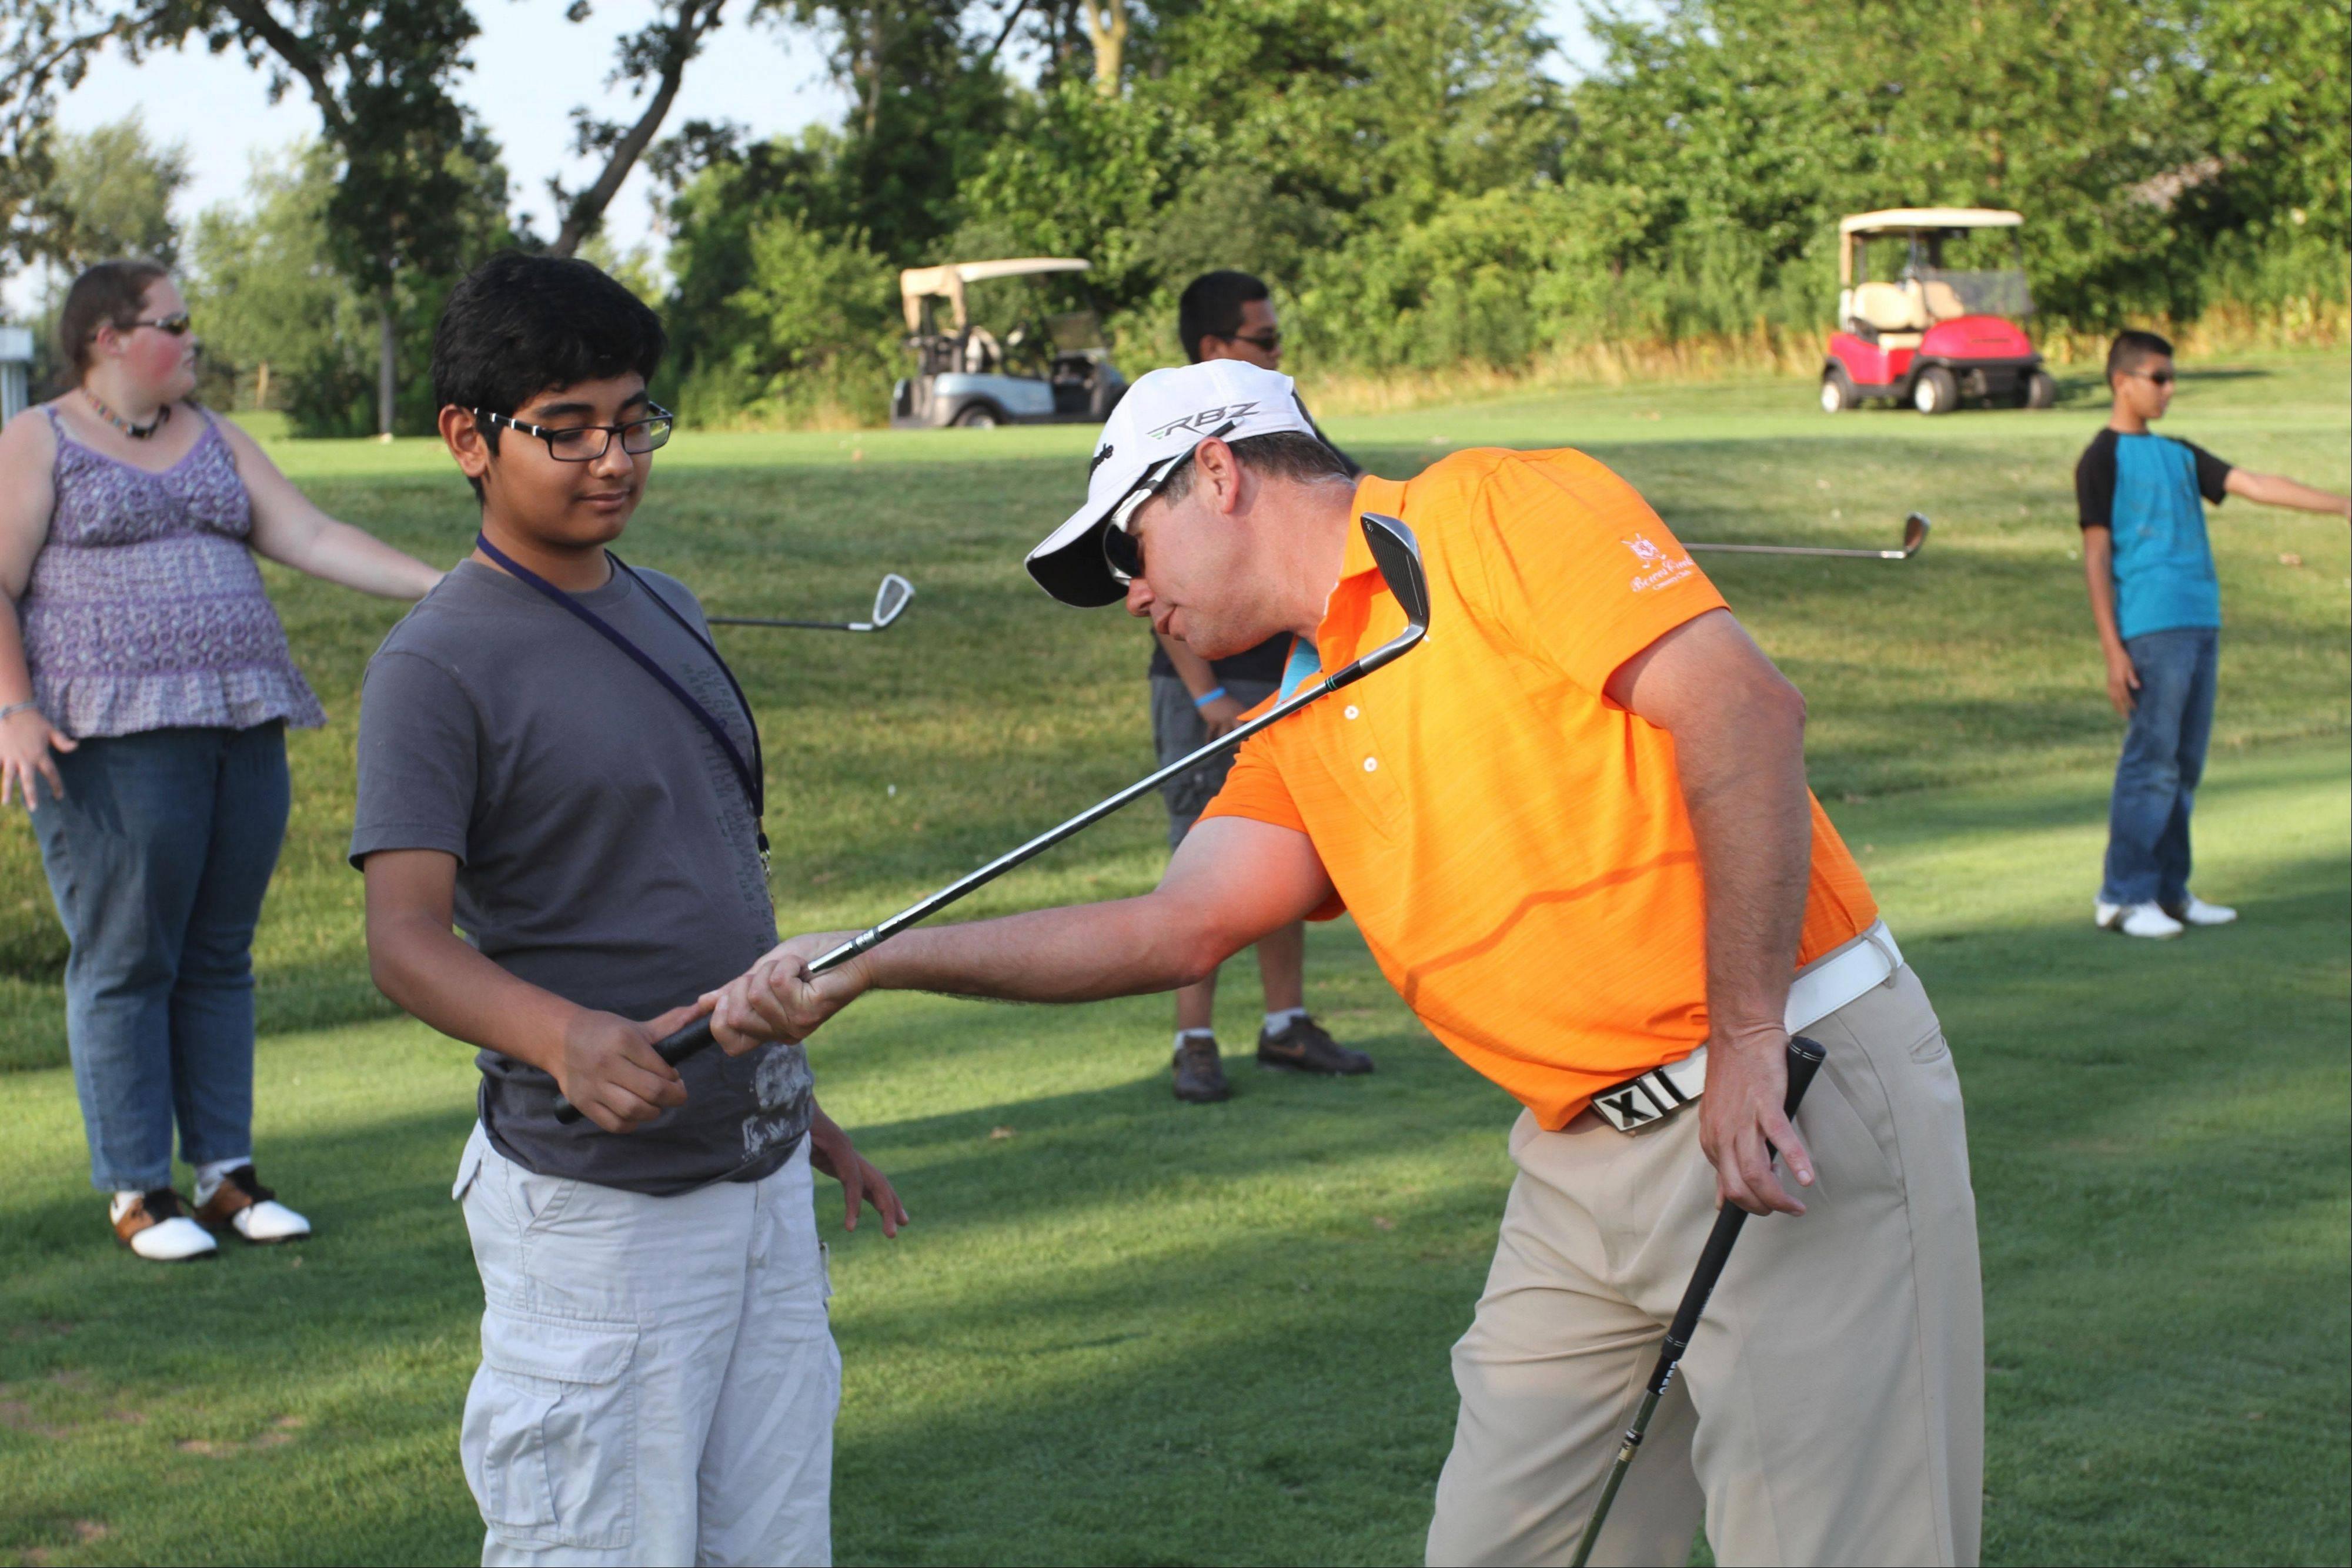 Bowes Creek golf pro Kurt McCullon instructs Alexis Campuzano on how to properly grip a golf club at the PGA Medalist Golf Camp.